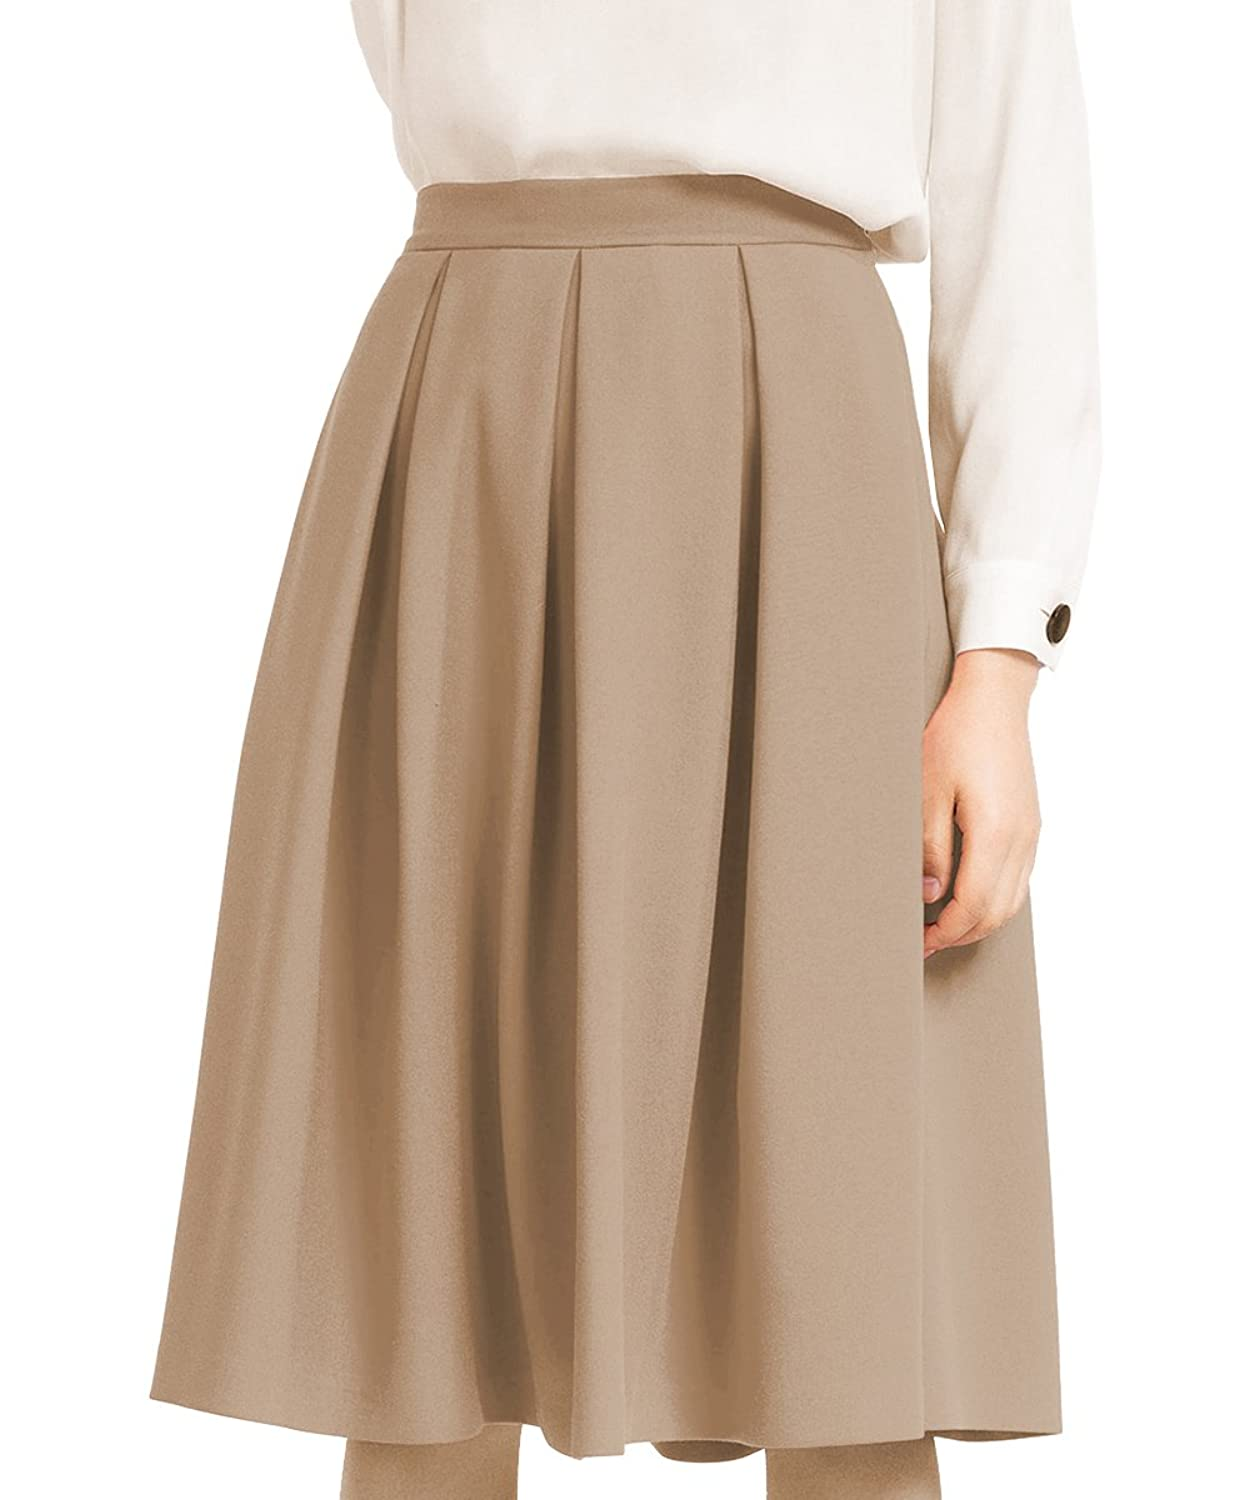 1940s Teenage Fashion: Girls Yige Womens High Waist Flared Skirt Pleated Midi Skirt With Pocket $19.88 AT vintagedancer.com